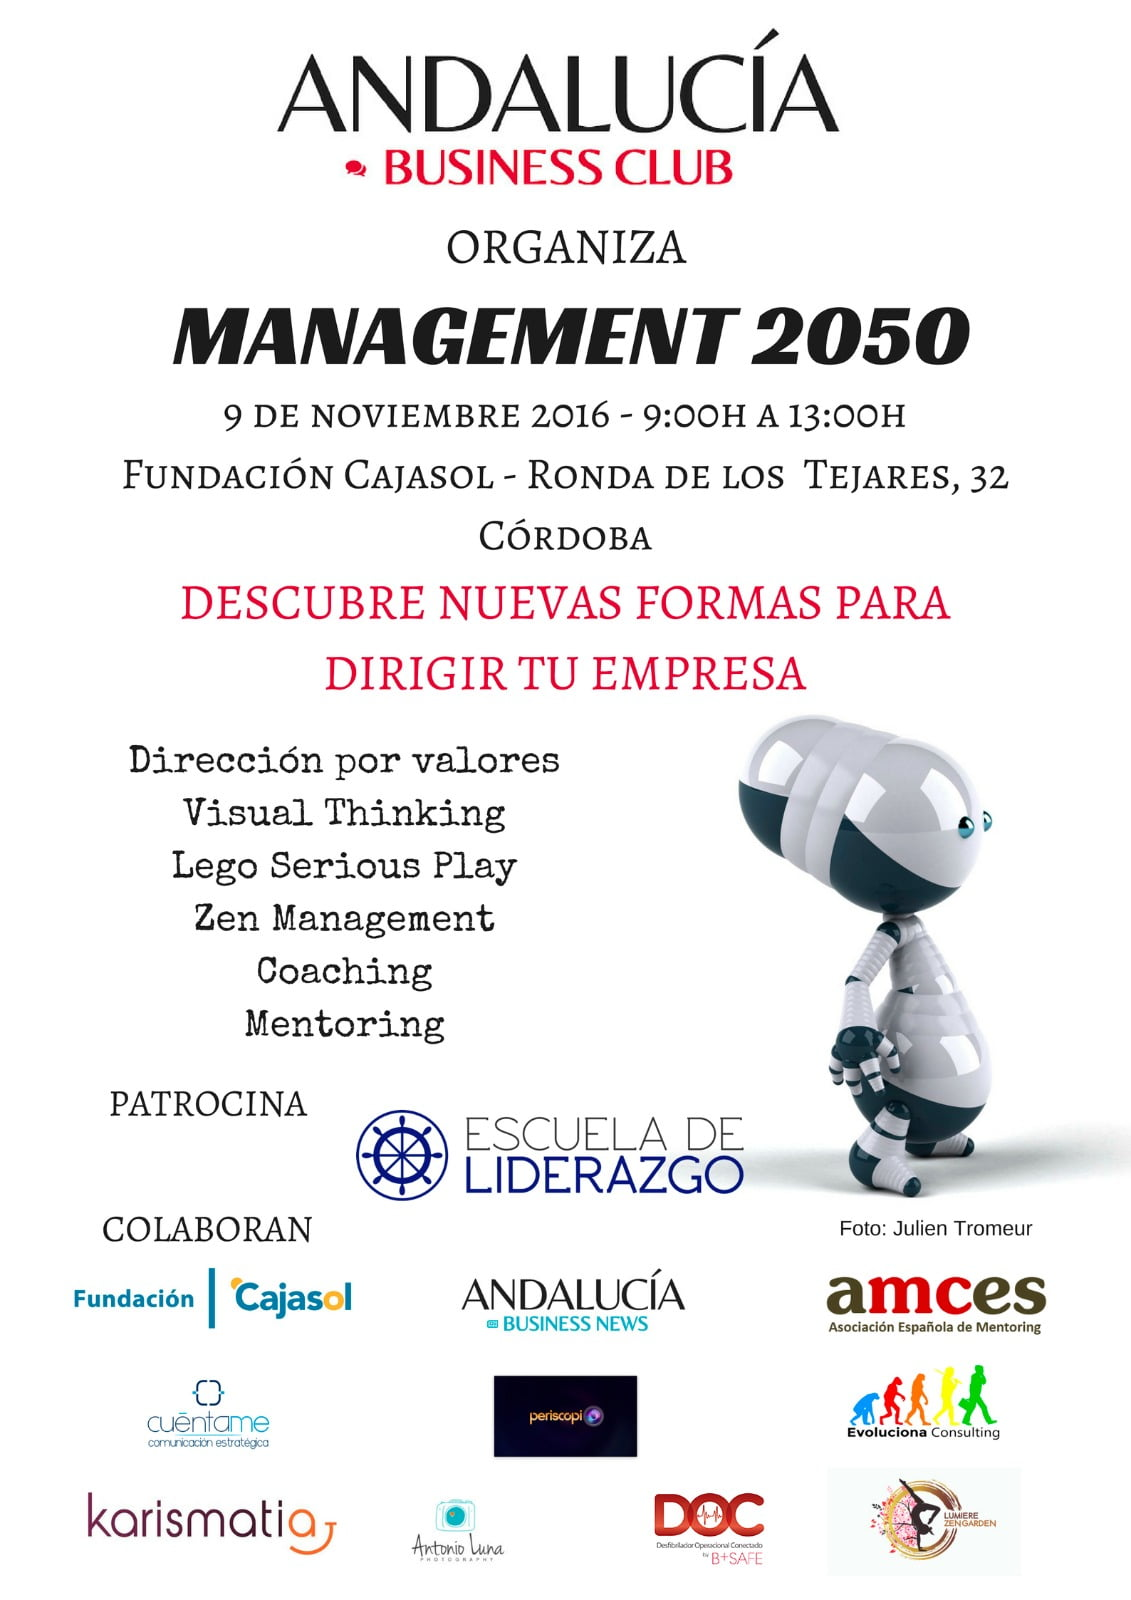 Cartel anunciador de la Management 2050